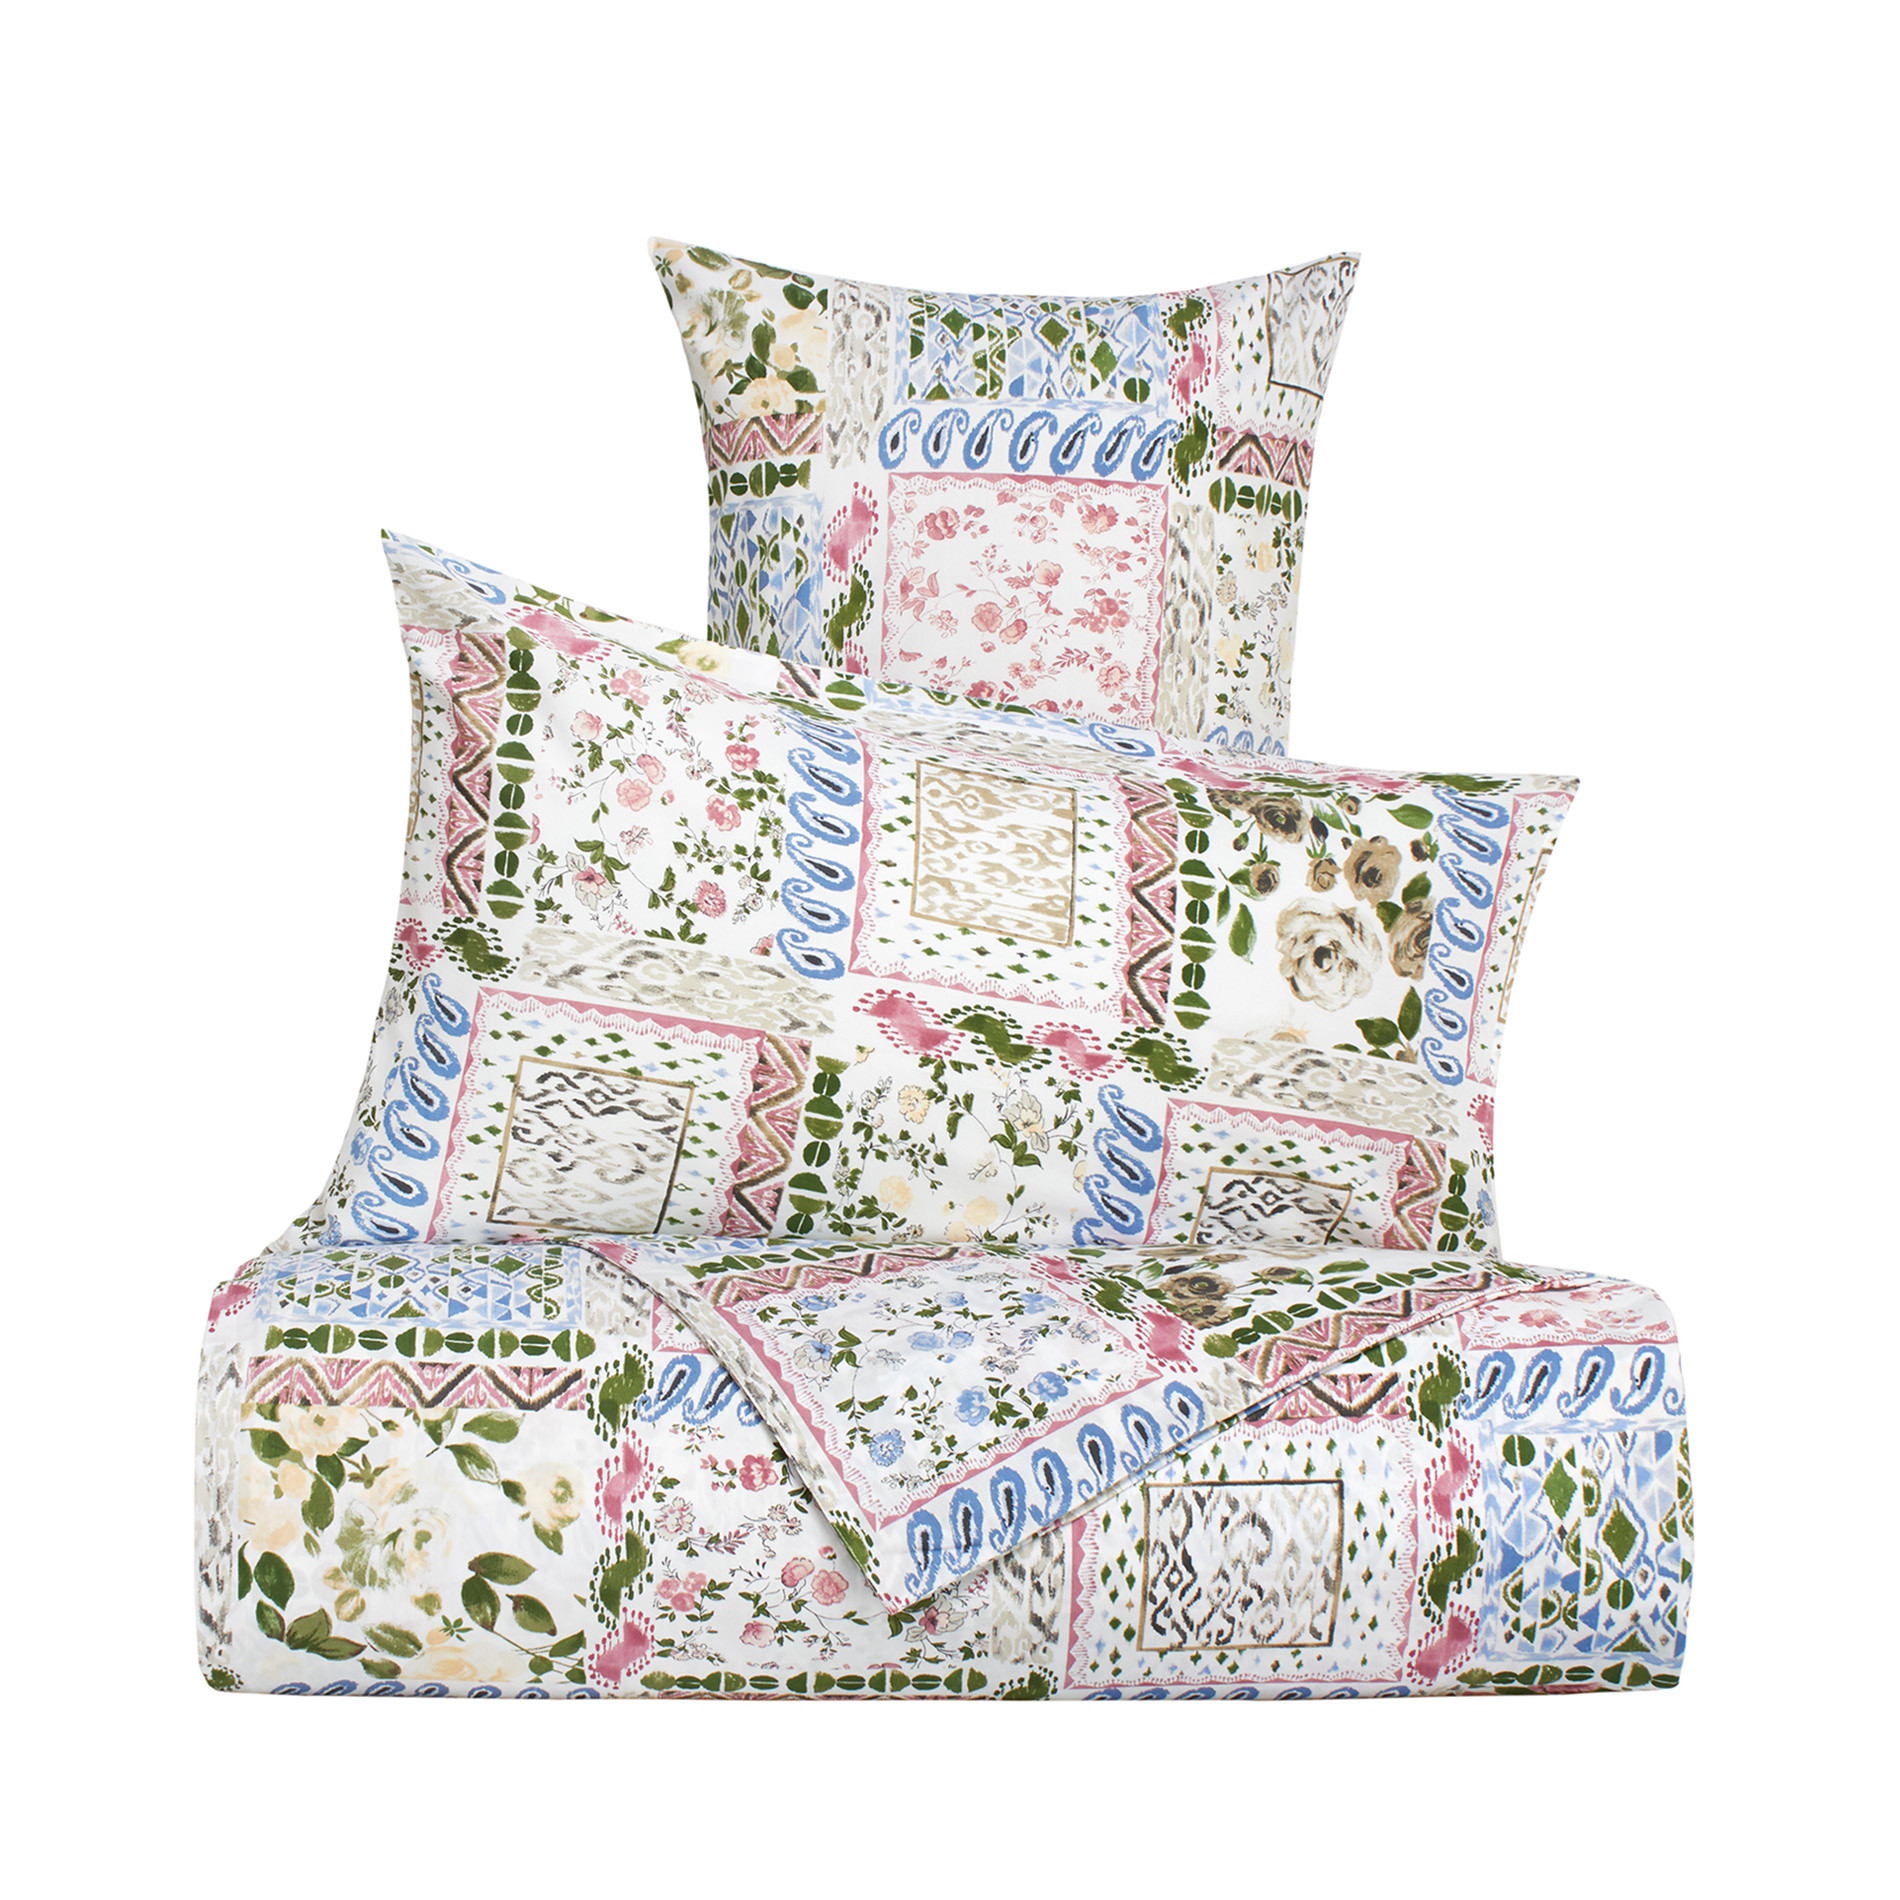 king next patchwork covers amara bed duvet linen cover bedroom previous clarissa buy hulse products super indigo